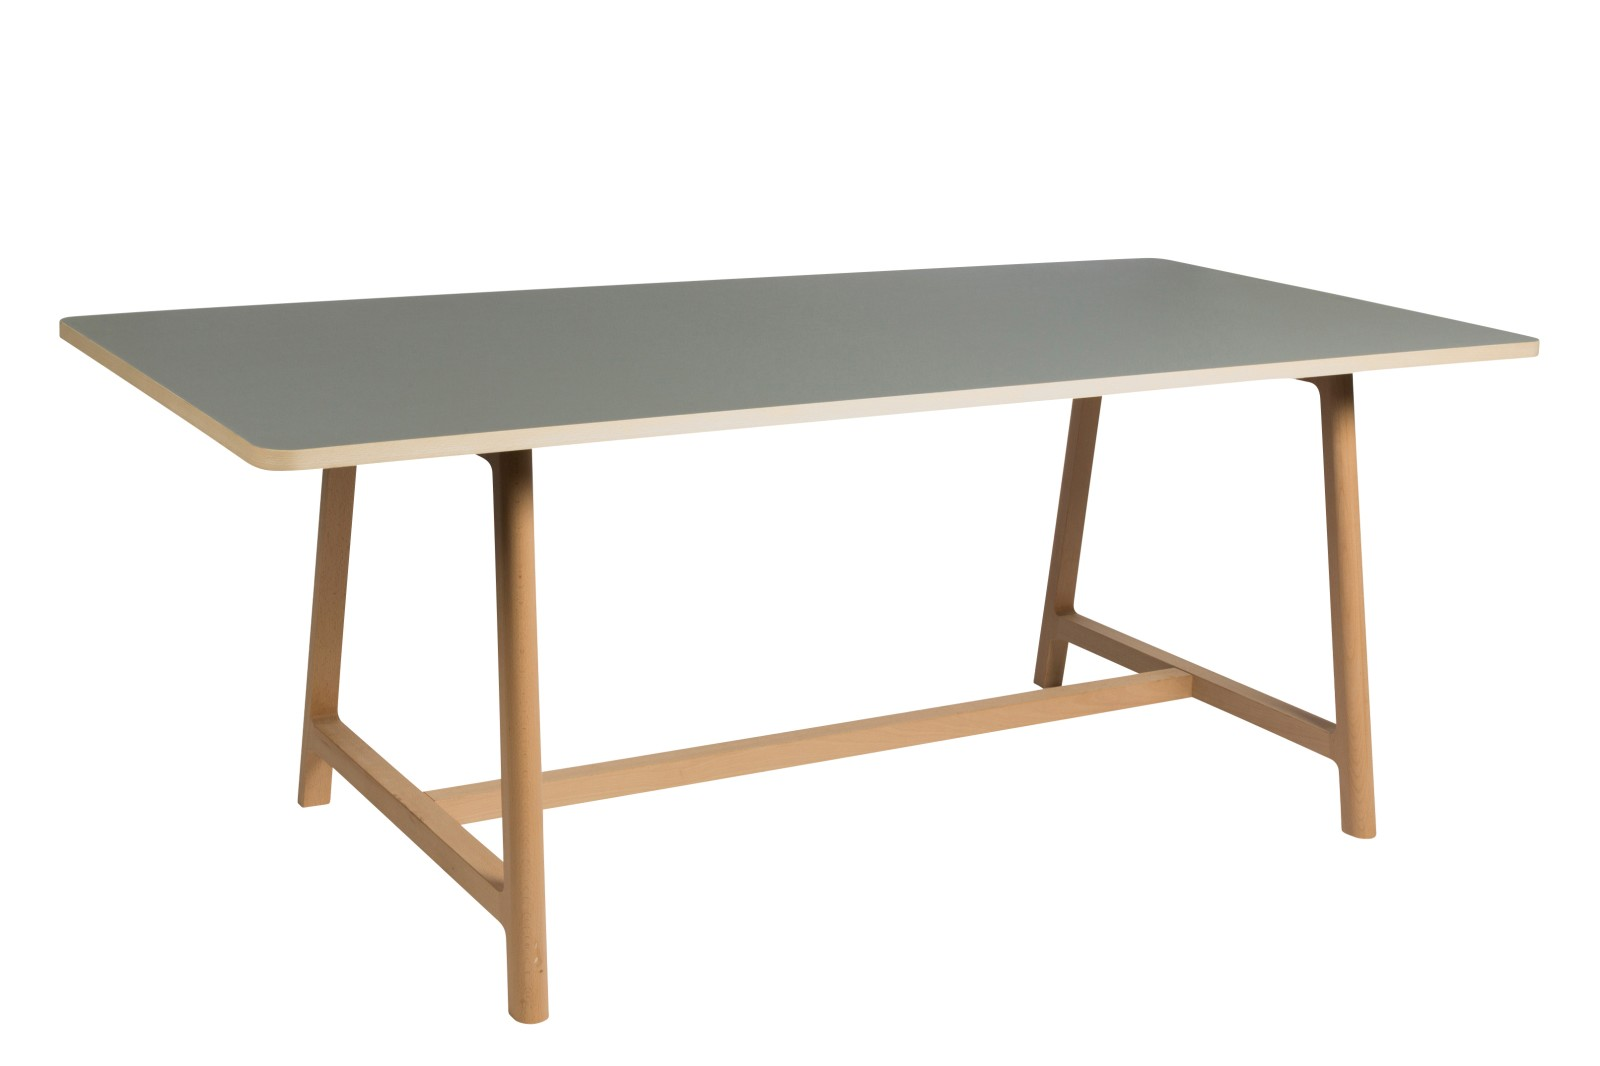 Frame Dining Table Matt Lacquered Beech, Grey Top, Small